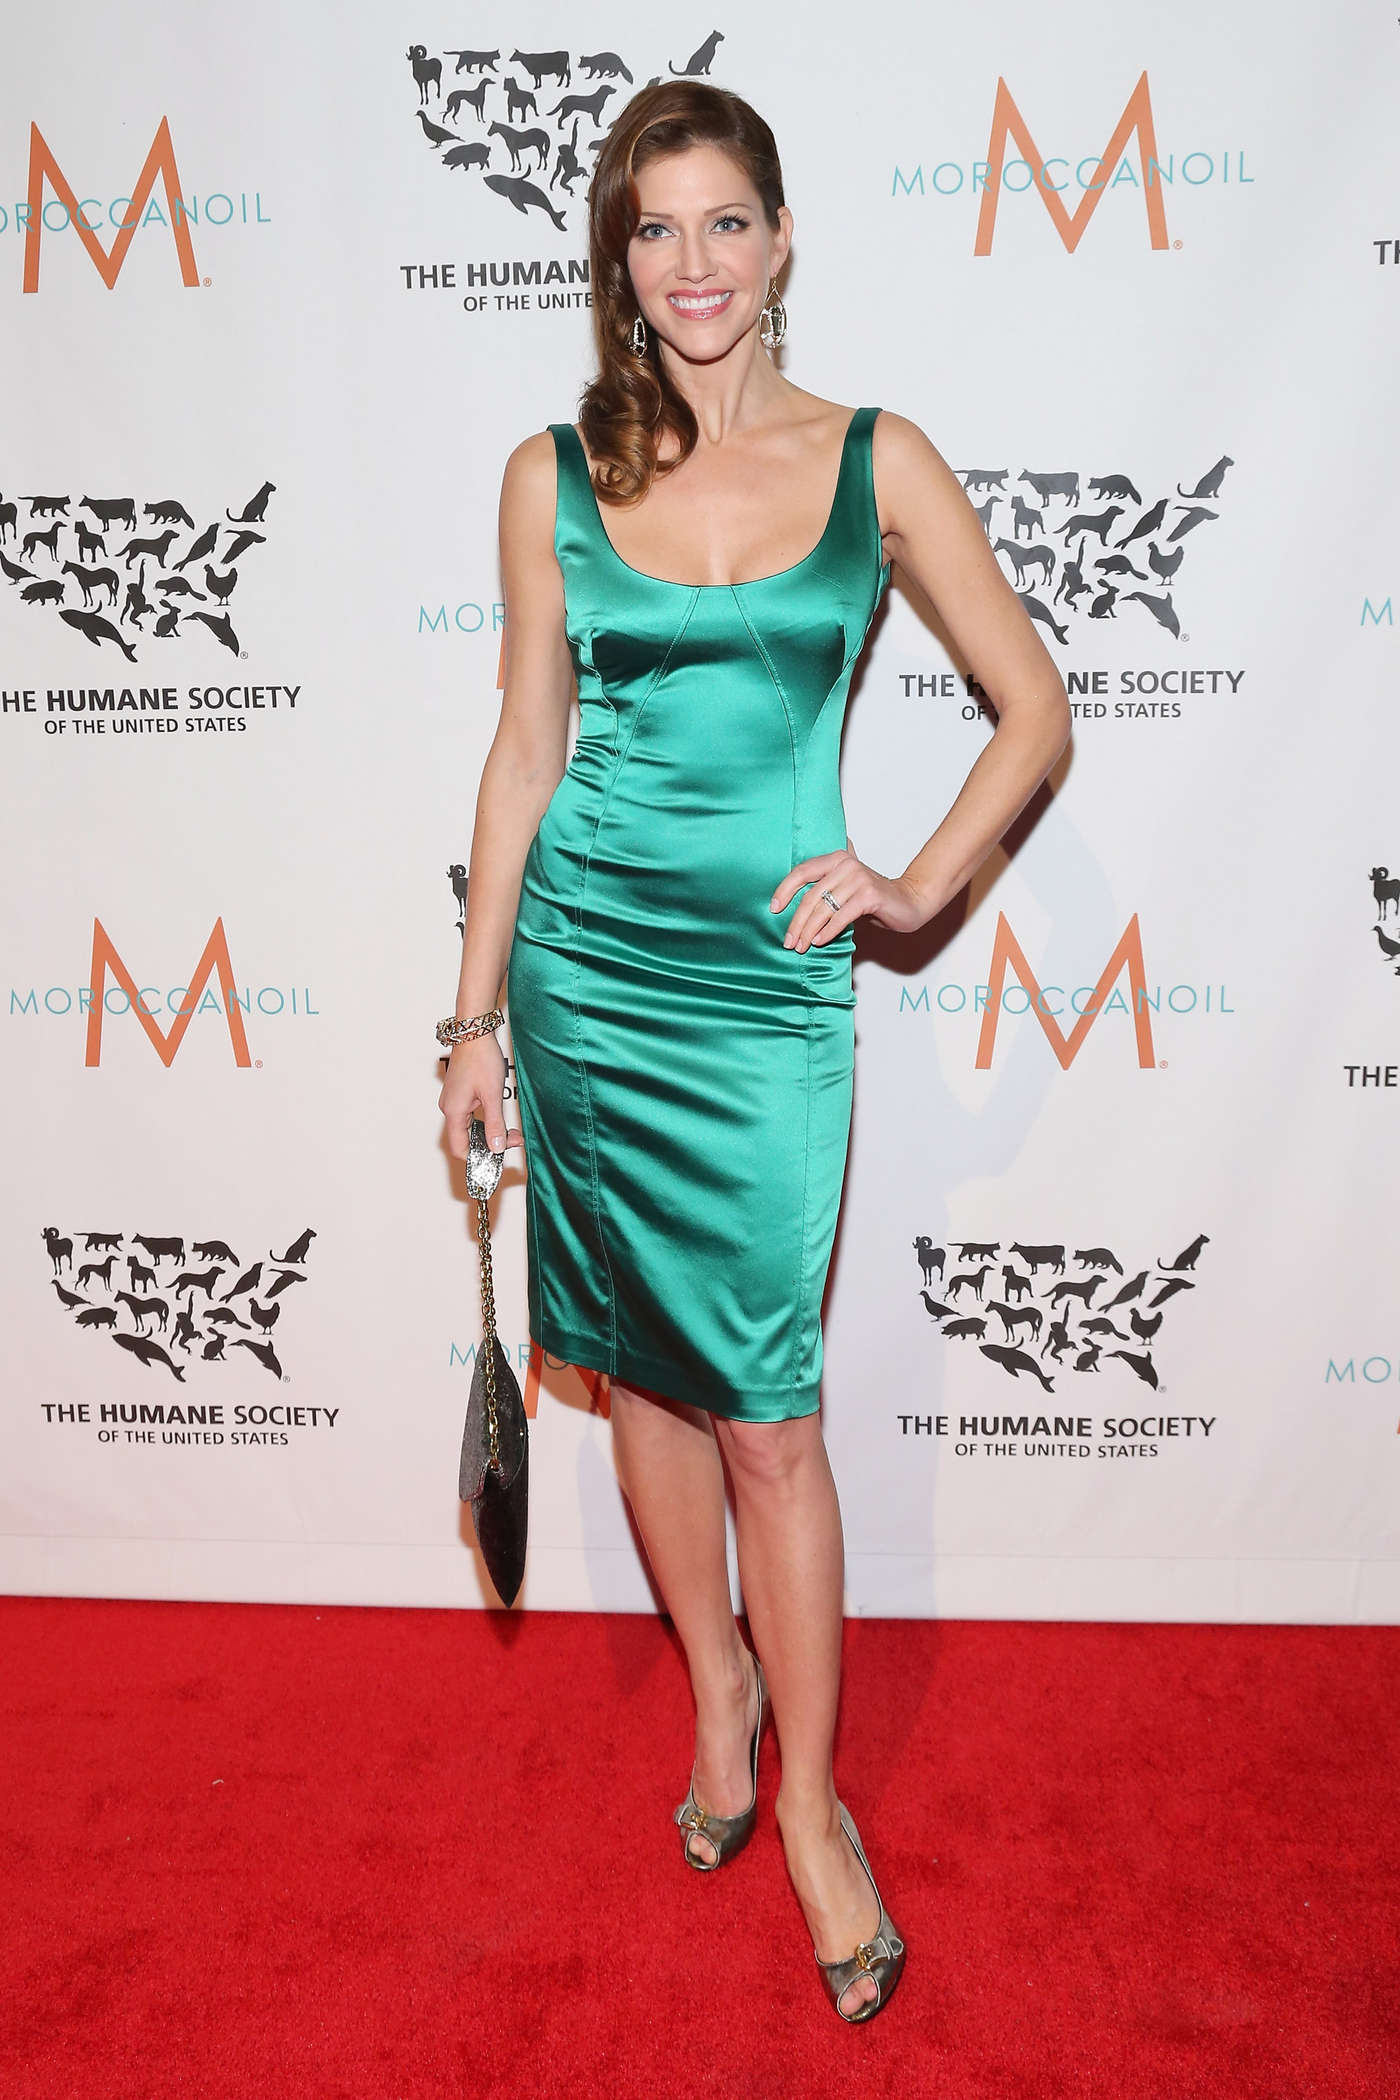 Tricia Helfer at The Humane Society Gala in New York